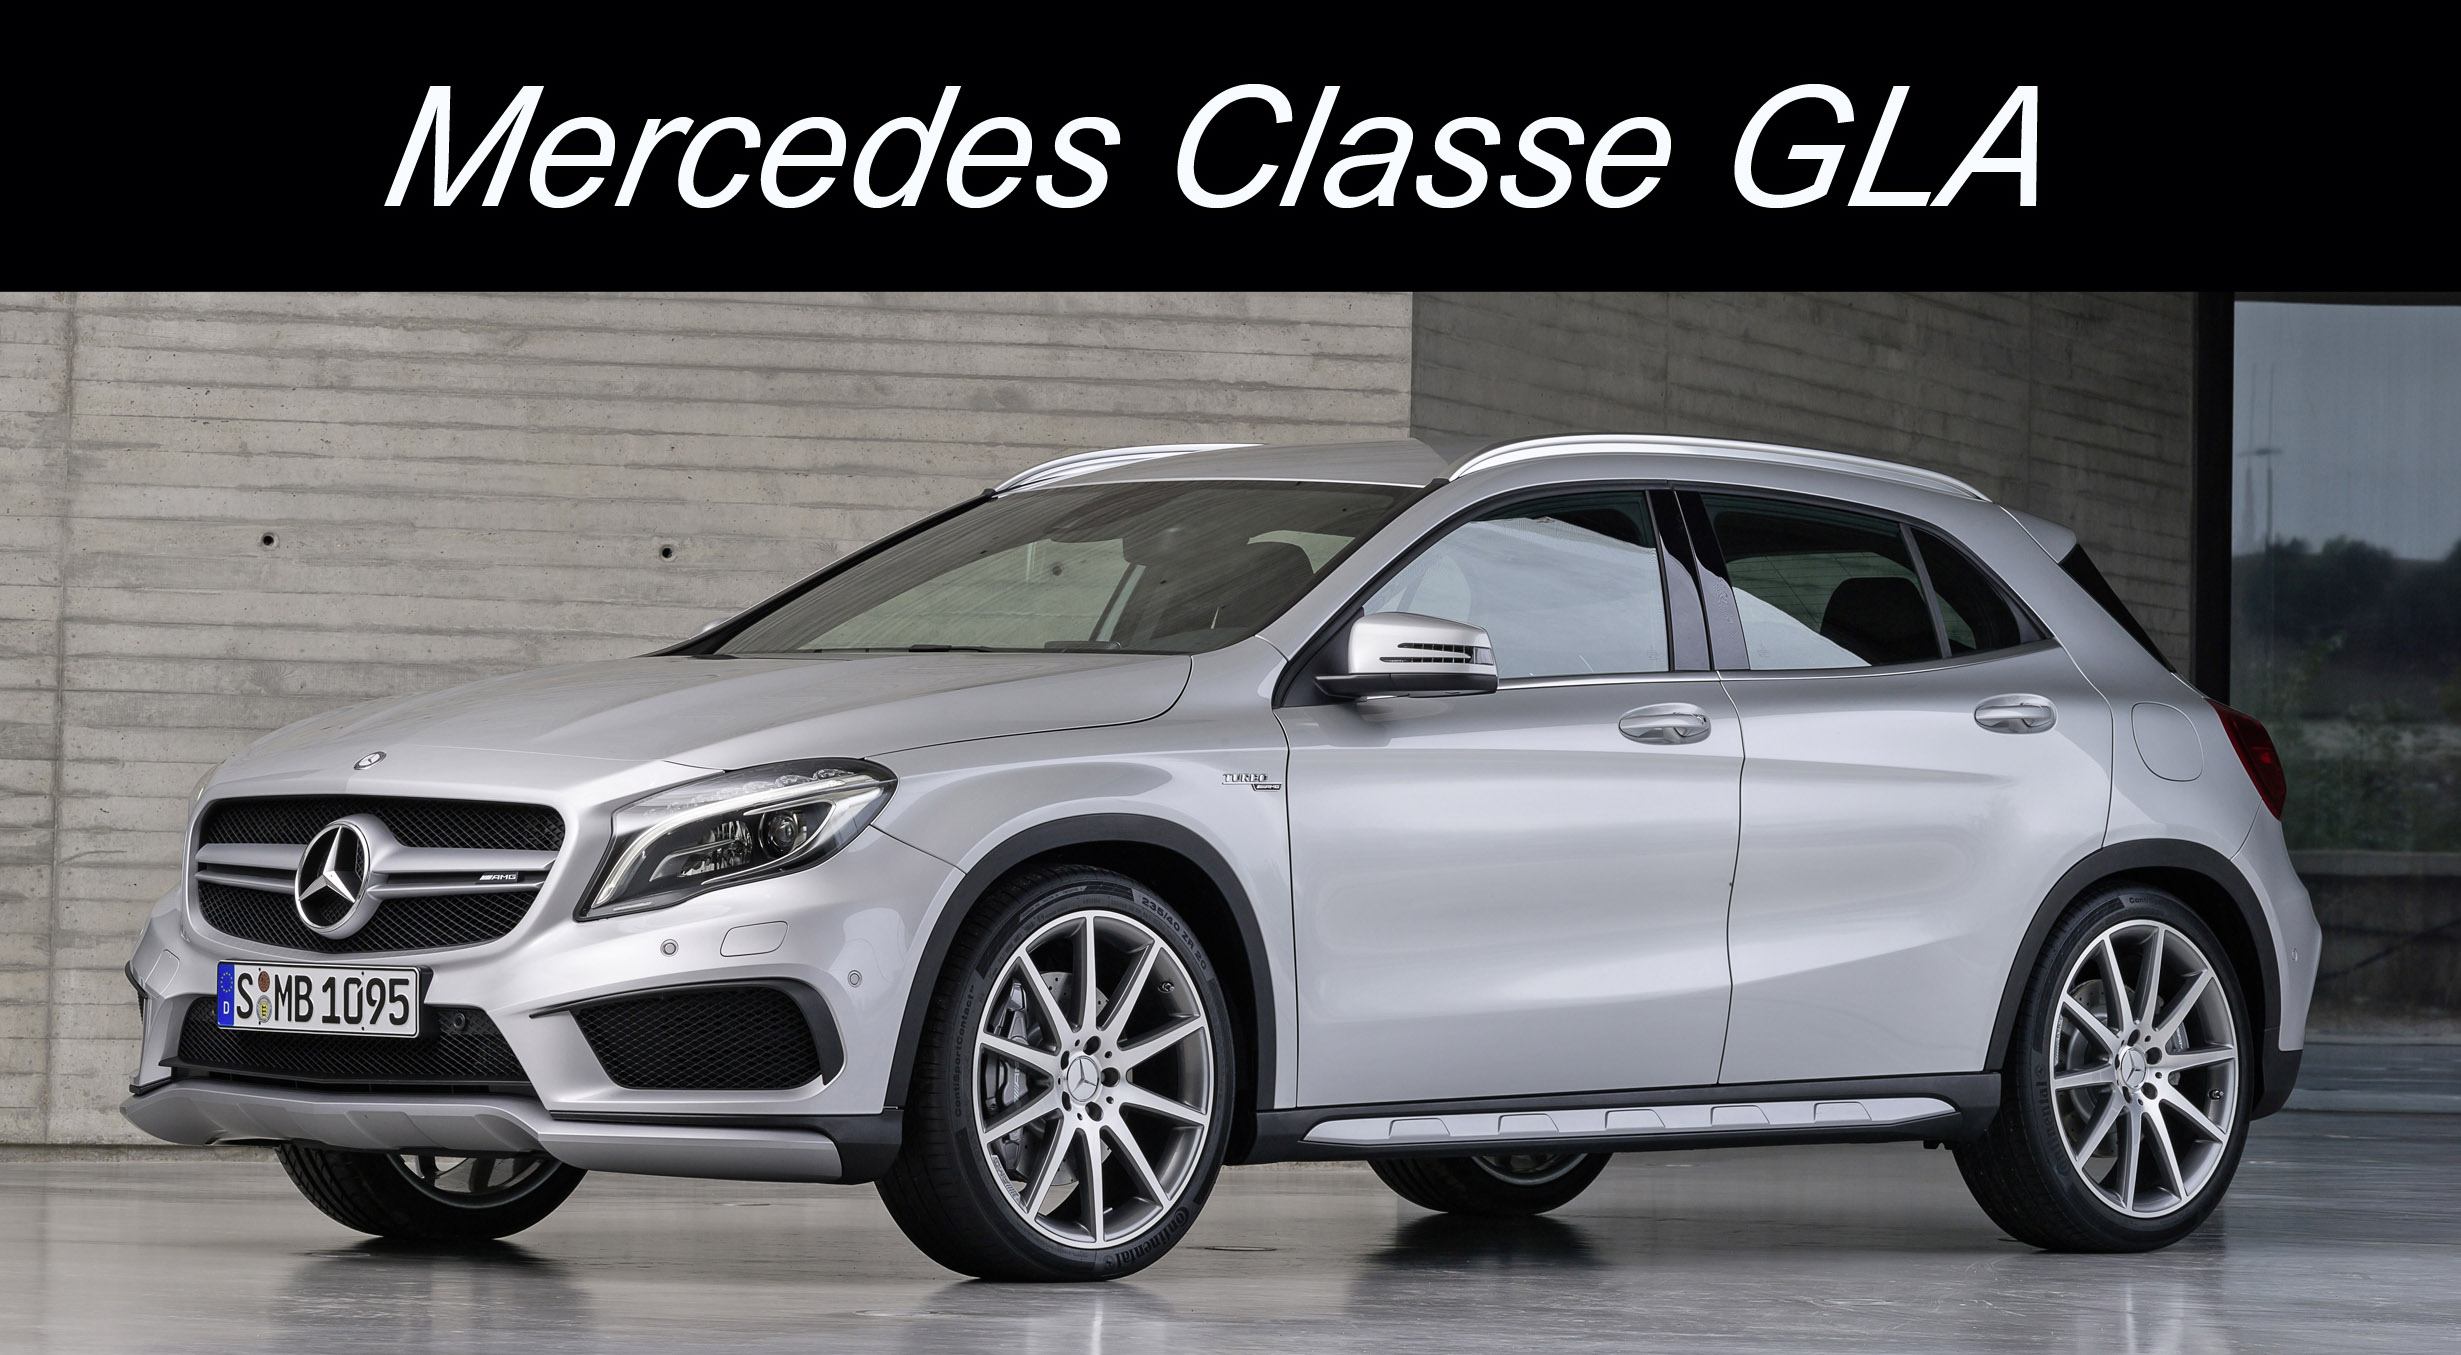 les autres stars de mercedes 2 gla glk gle gl g. Black Bedroom Furniture Sets. Home Design Ideas